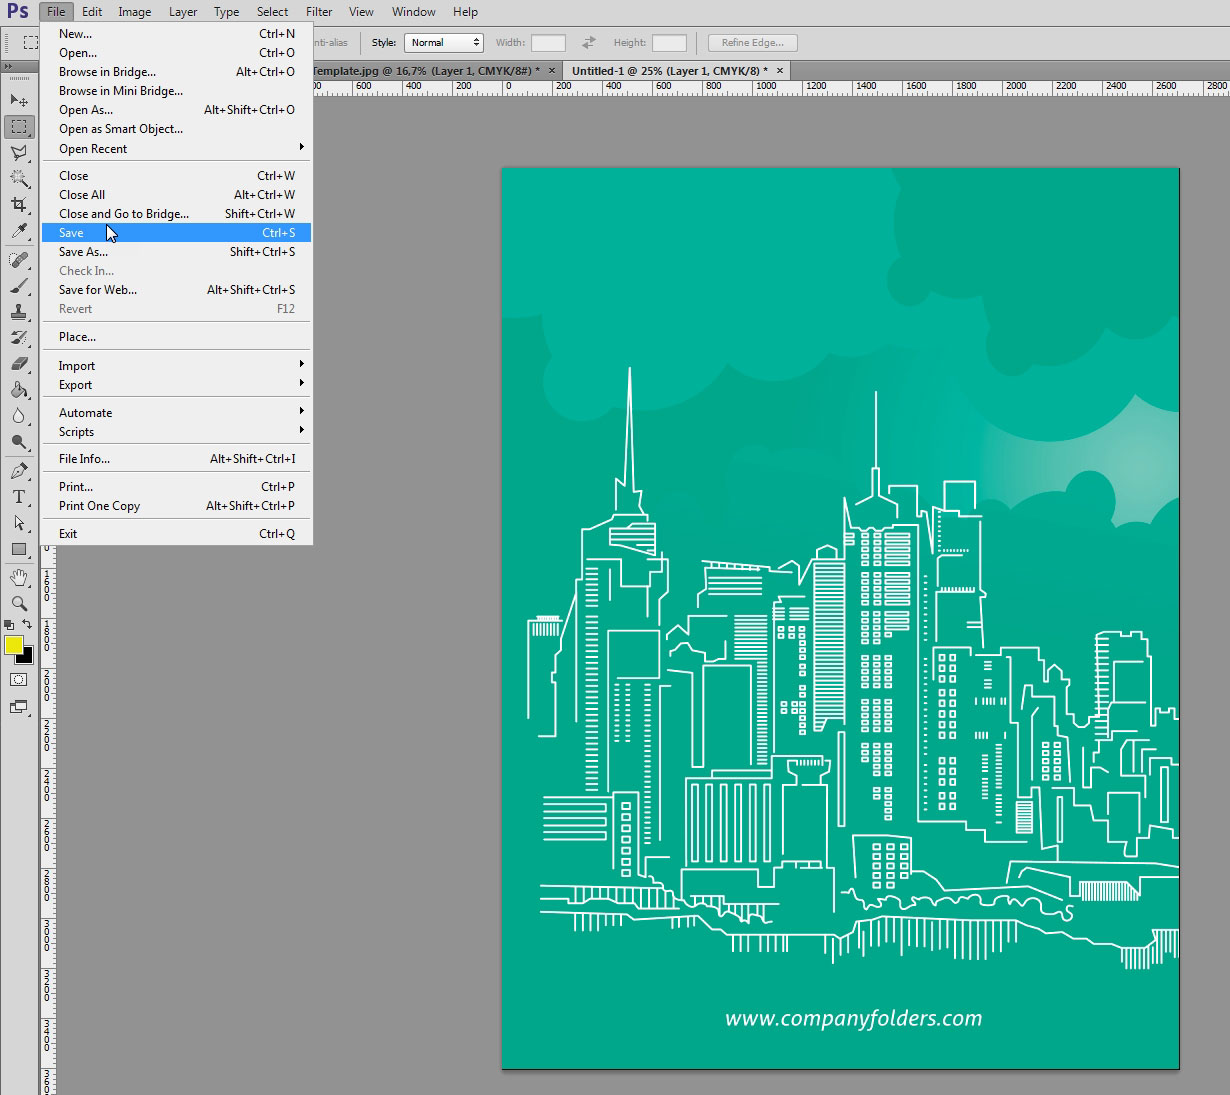 Creating Mockup-Ready Images from an Illustrator Template - Step 7